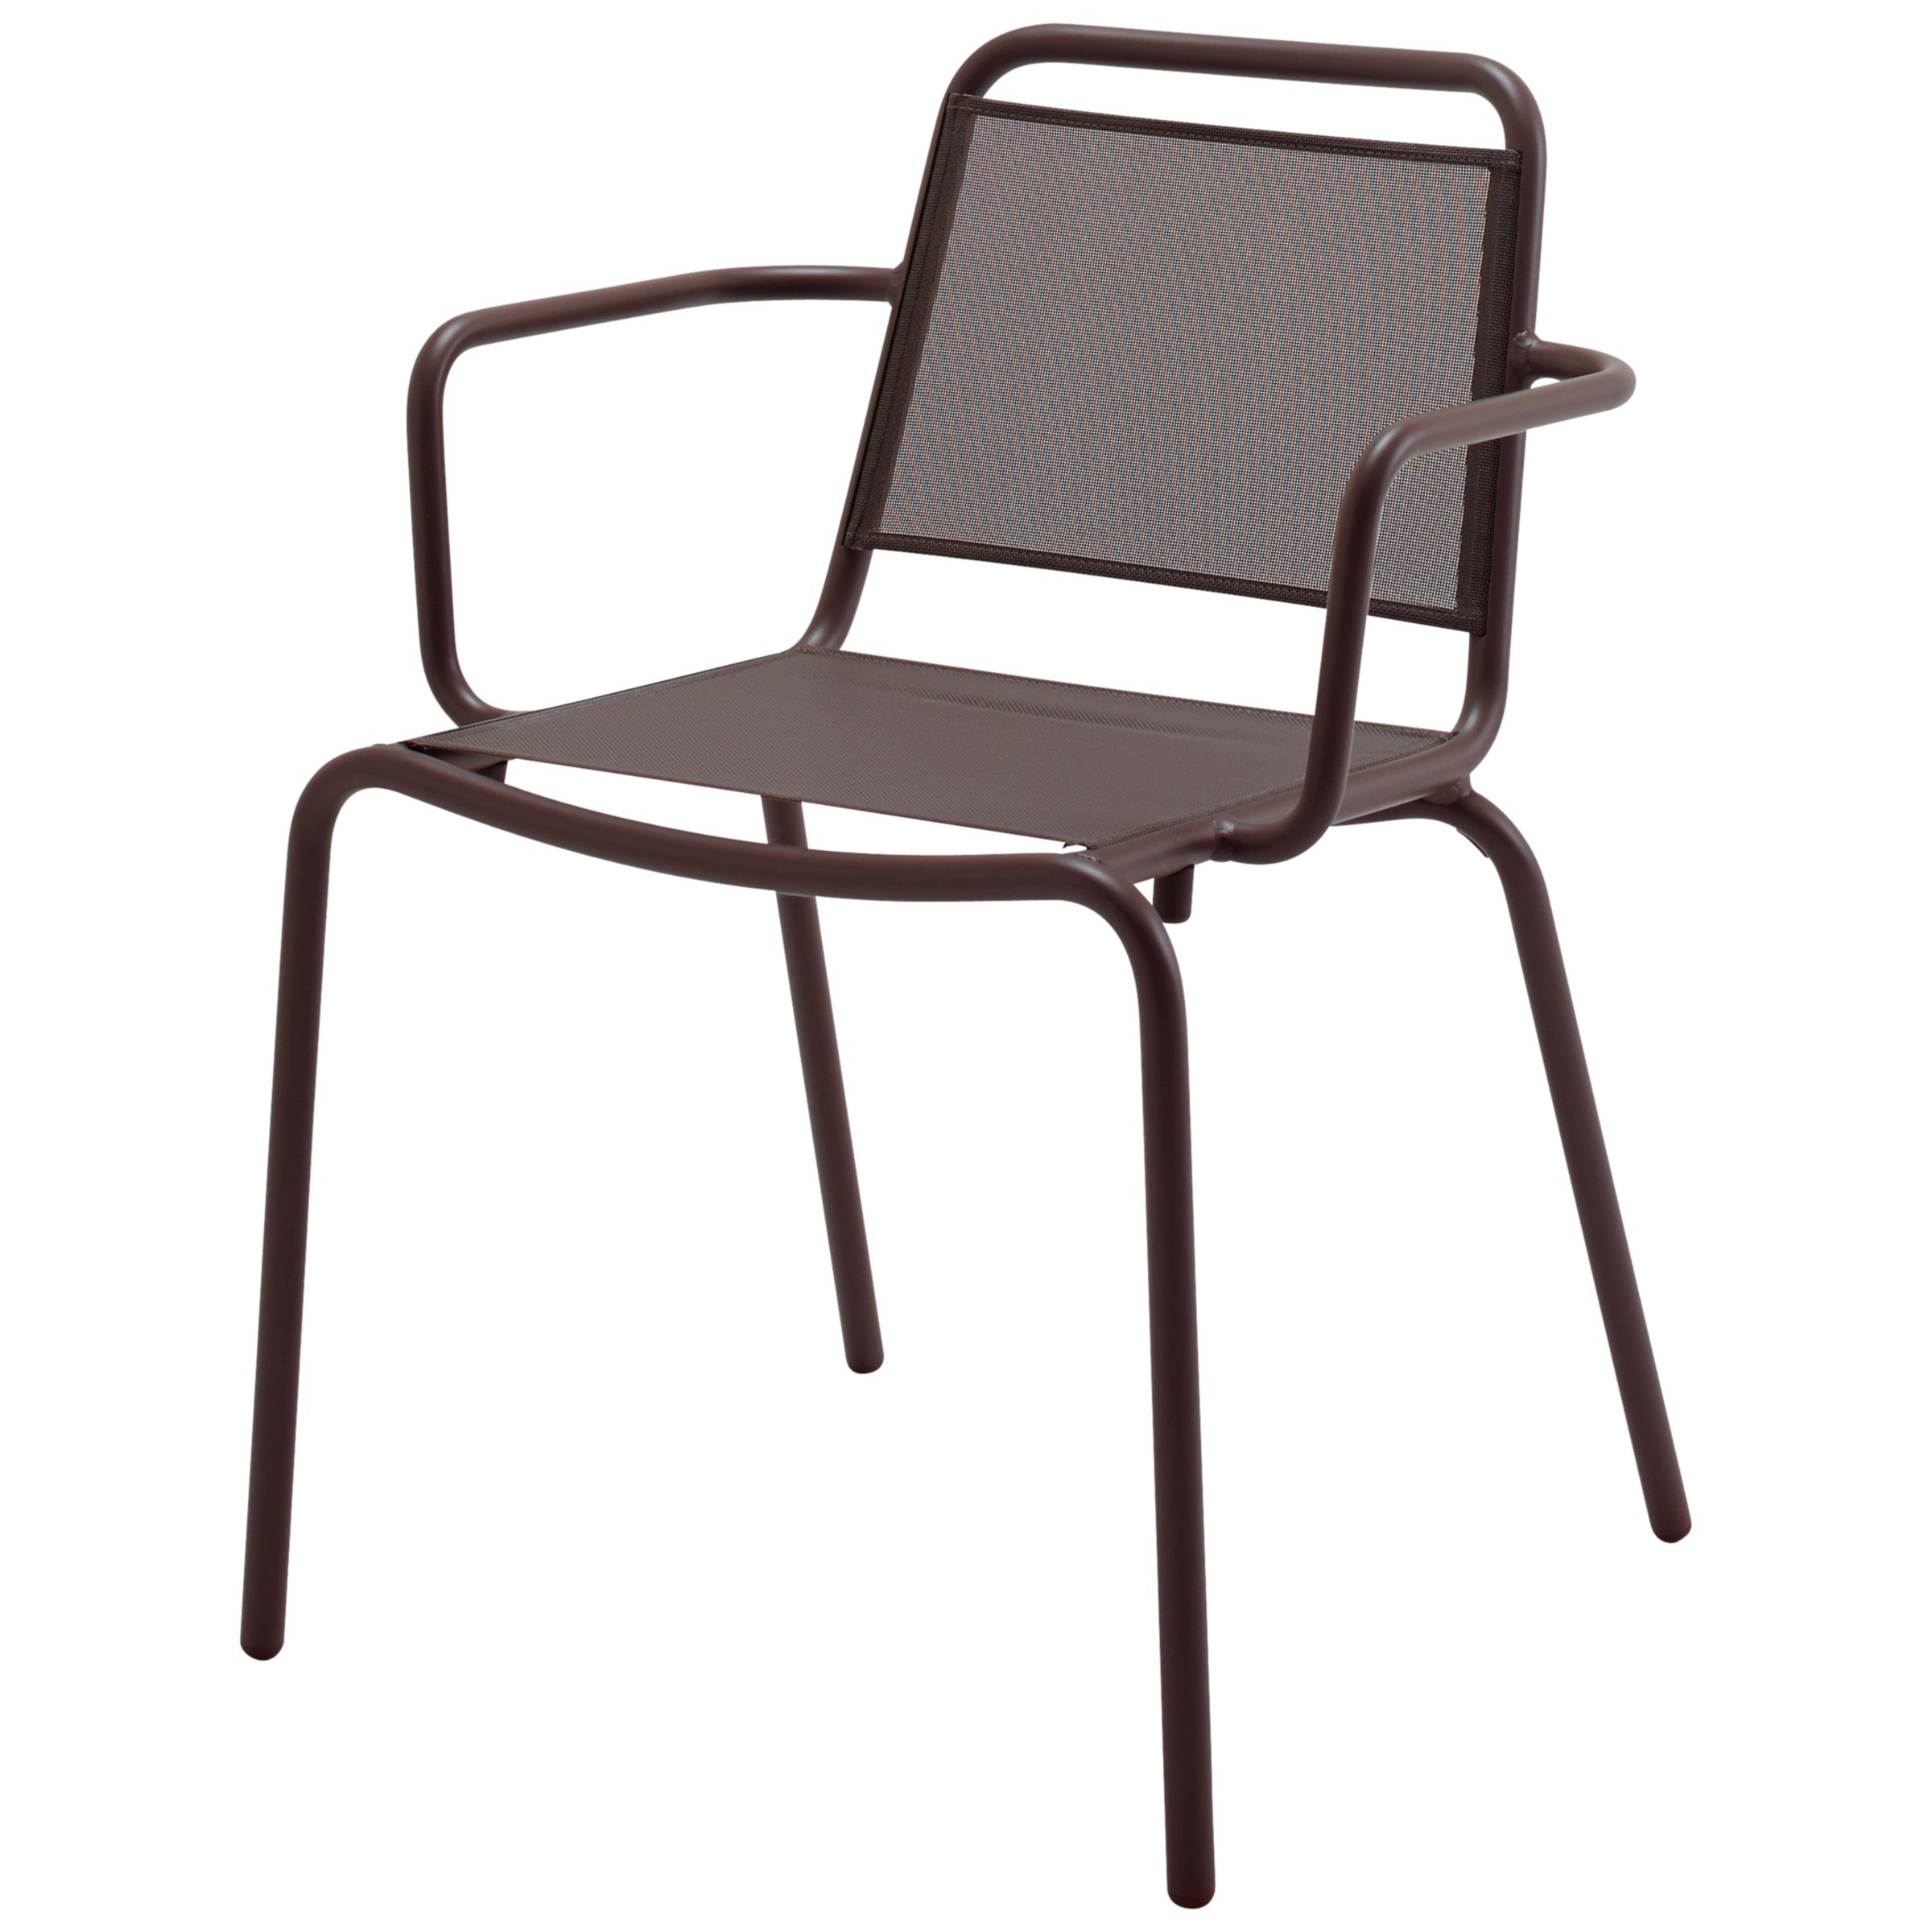 Gloster Nomad Sling Stacking Chair with Arms, Taupe